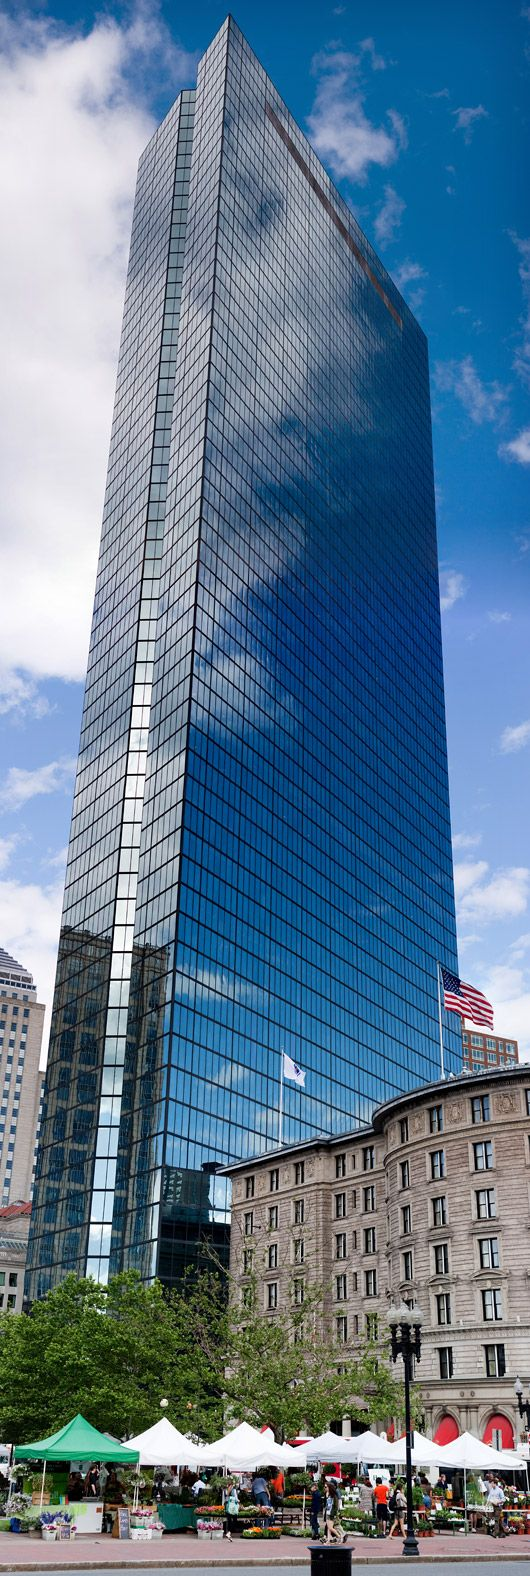 Boston's John Hancock Tower Receives the 2011 AIA Twenty-Five Year Award | Pei Cobb Freed & Partners